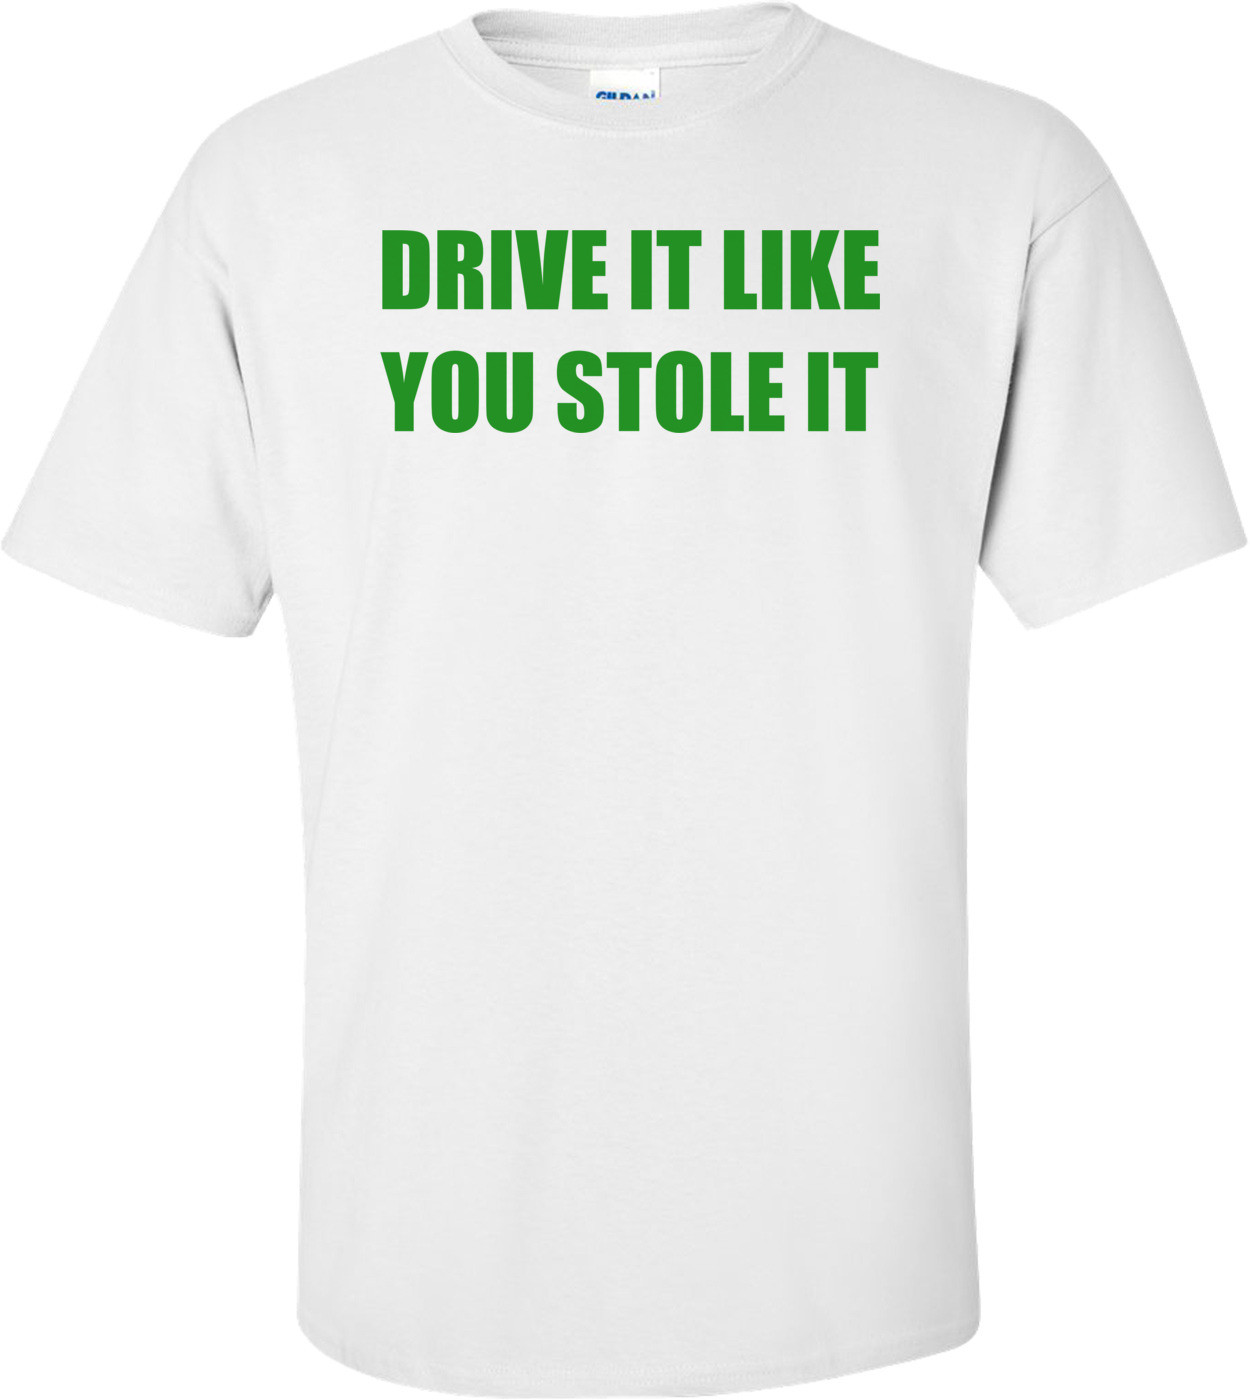 DRIVE IT LIKE YOU STOLE IT Shirt